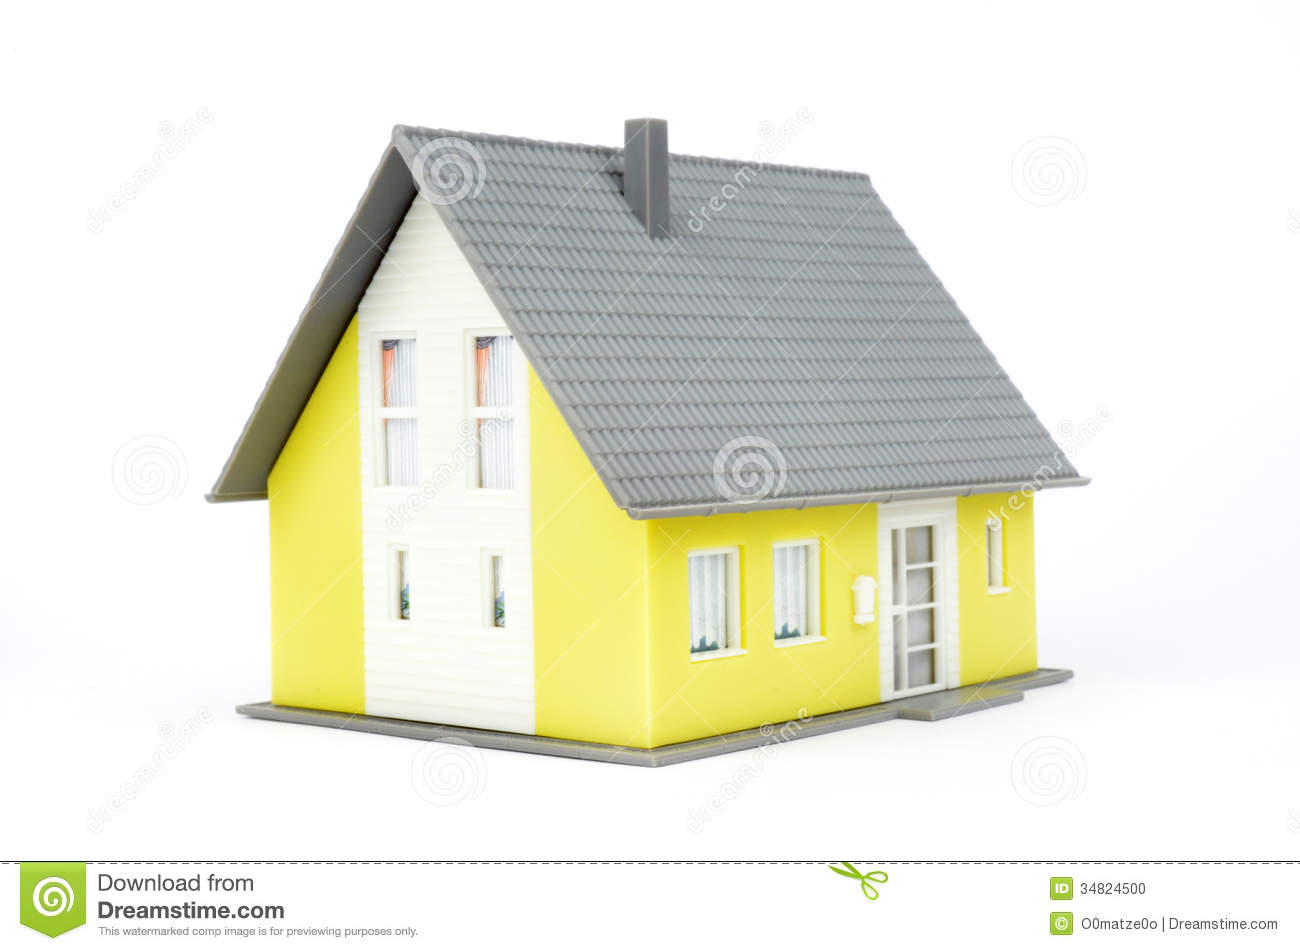 Model of a house stock photo  Image of people, roof